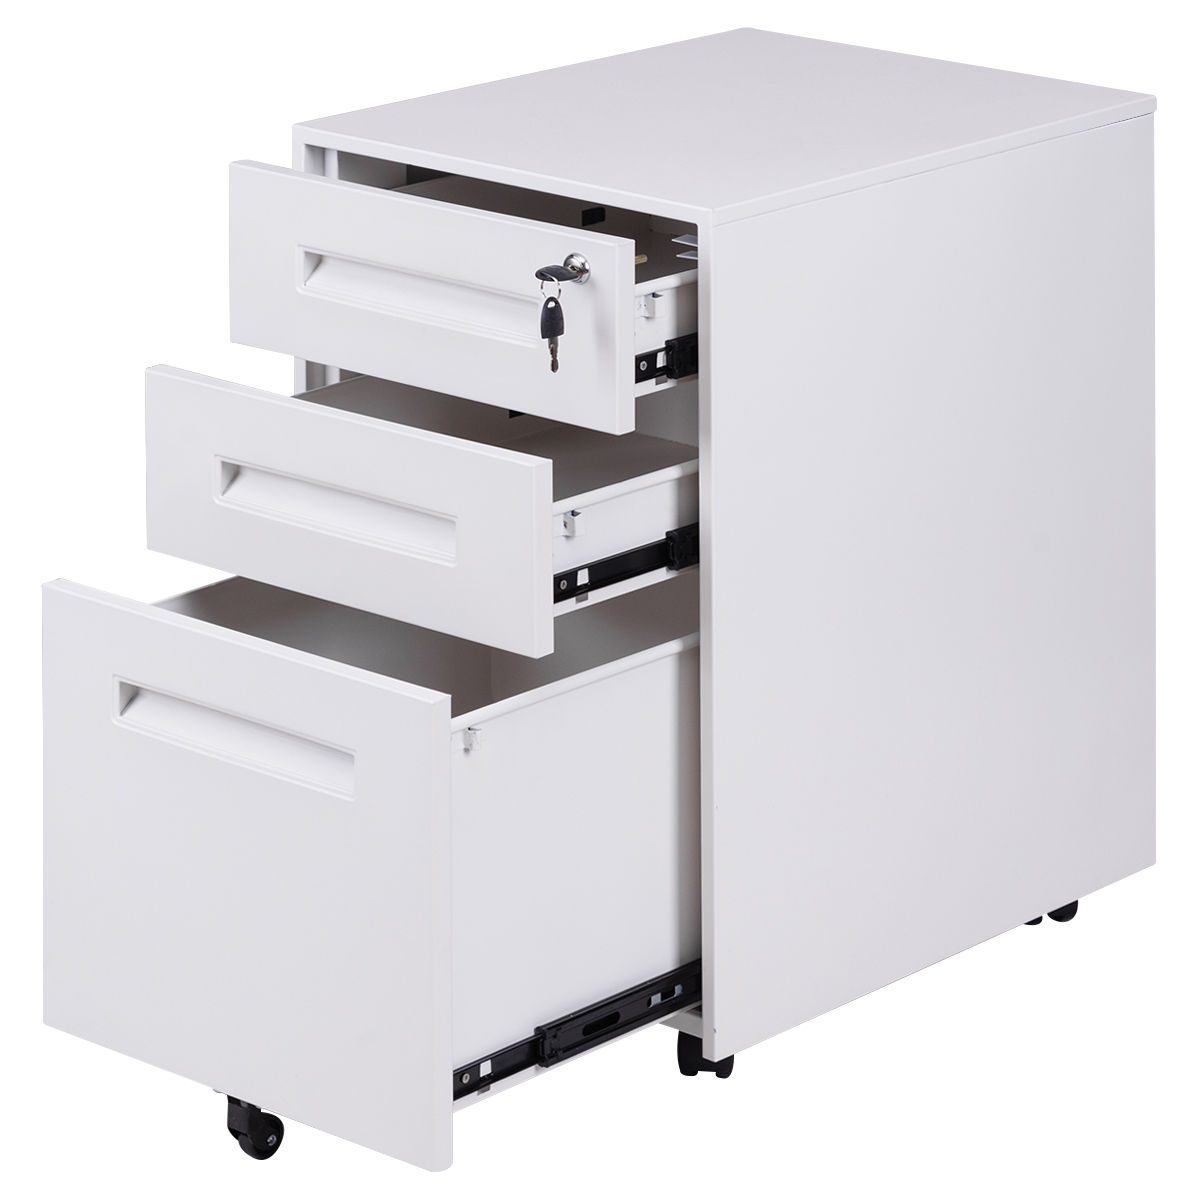 Rolling A4 File Cabinet Sliding Drawer Metal,Office Document Holder,Office Organizer